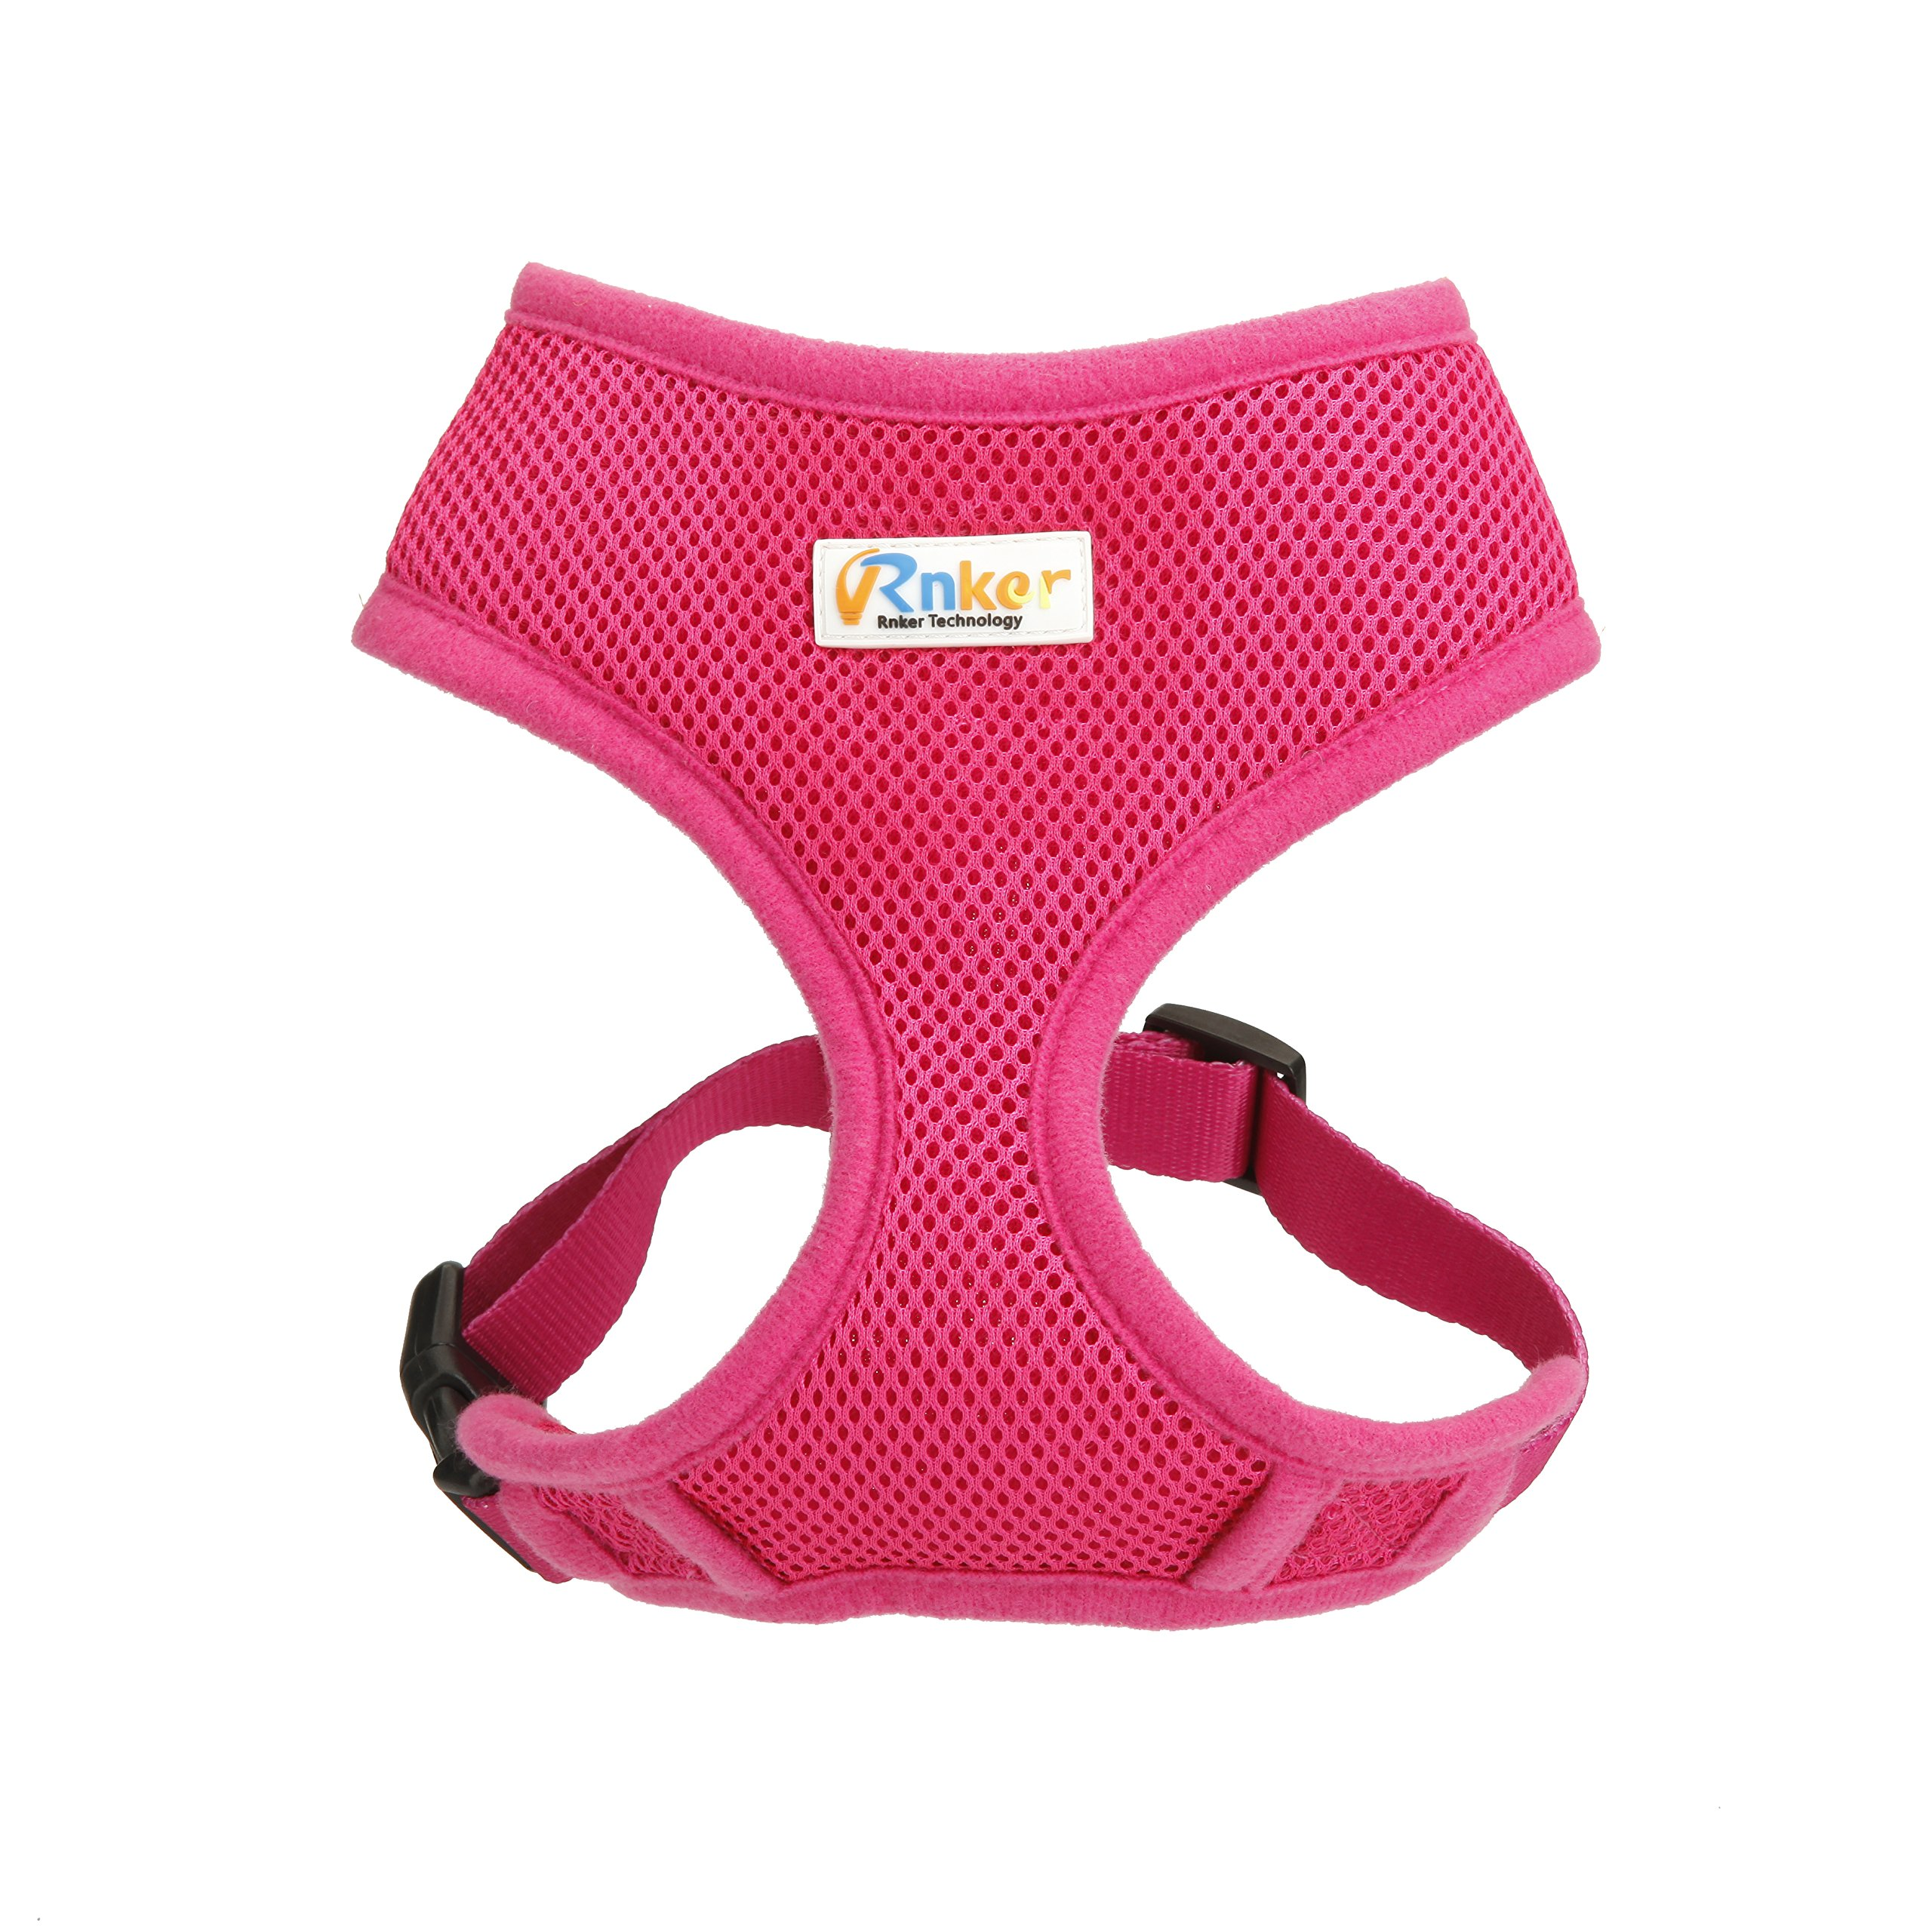 Rnker Soft Mesh Dog Harnesses Padded Vest No Pull Comfort Double Layer Harness Pet Puppy (Large, Pink)